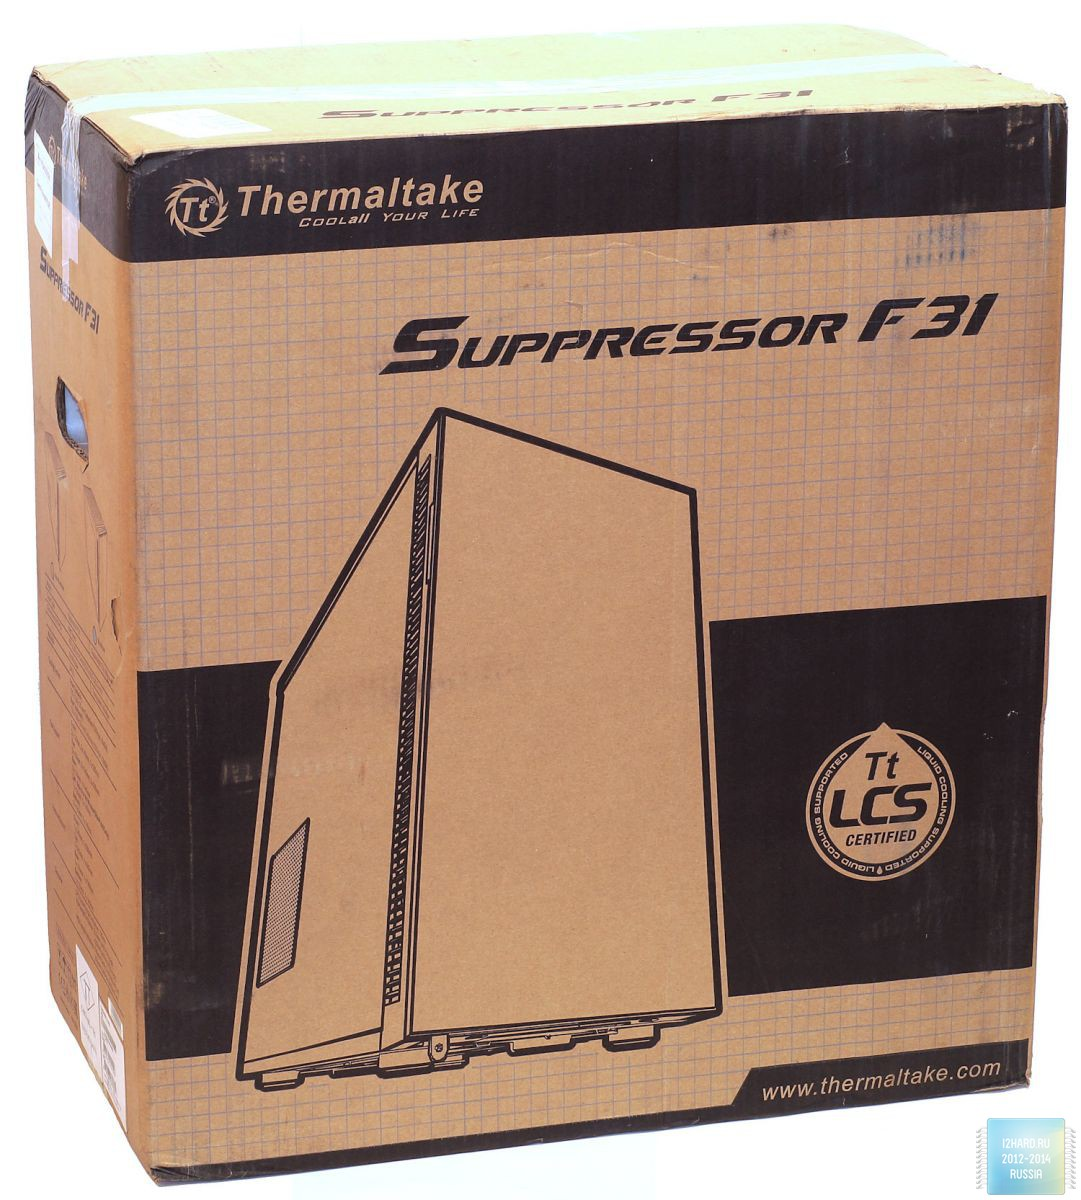 Упаковка и комплектация корпуса Thermaltake Suppressor F31